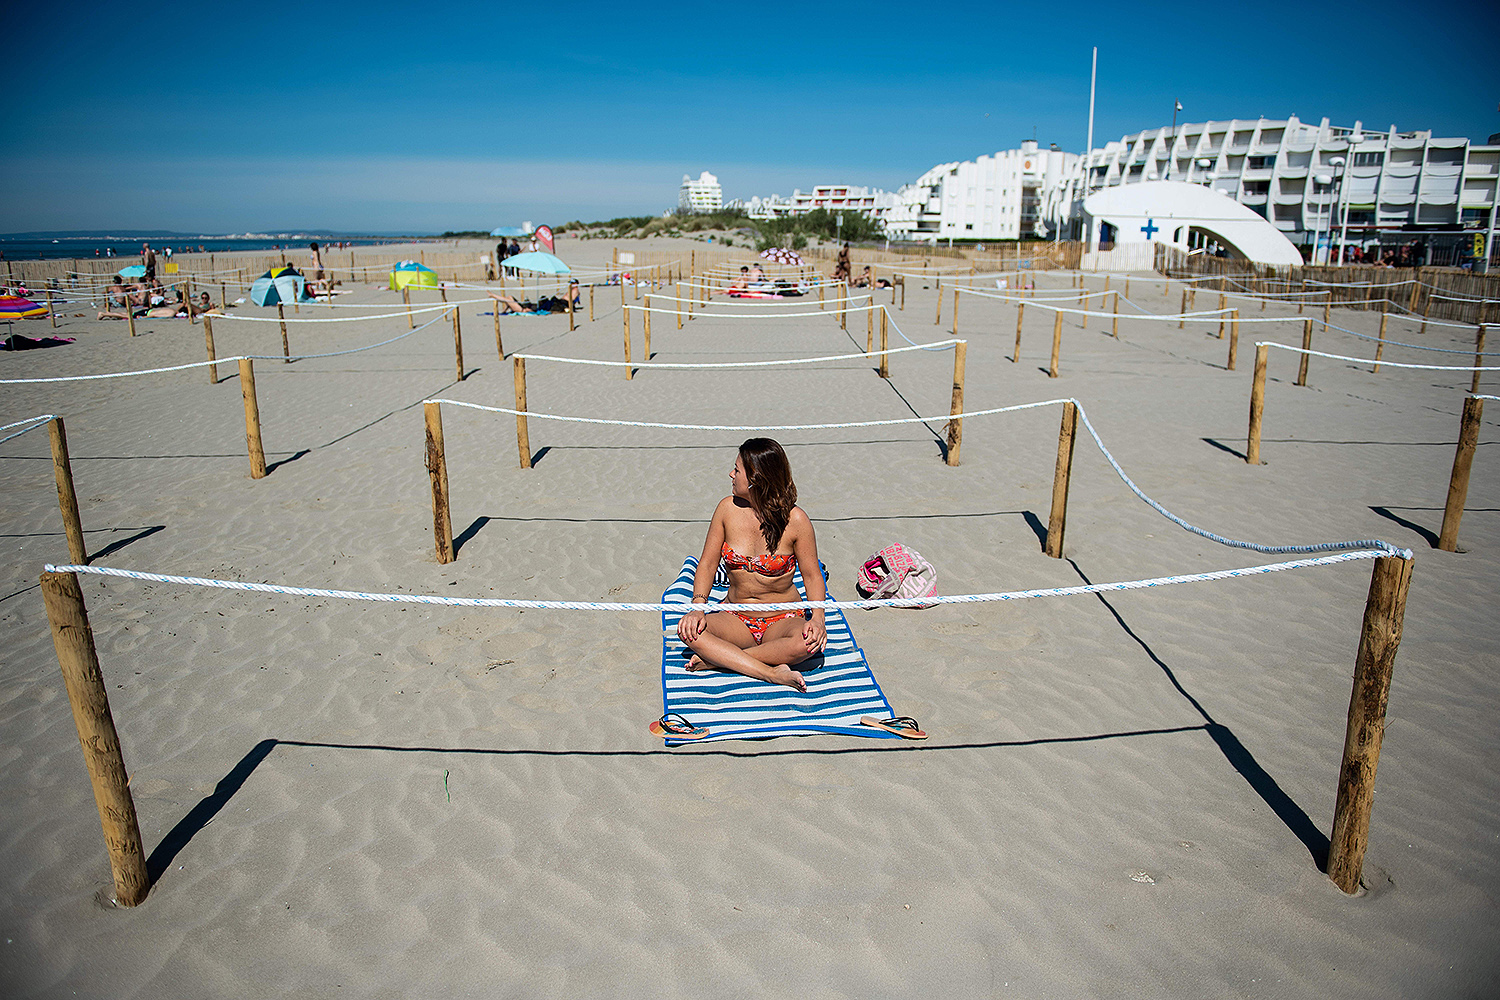 A woman sunbathes in a roped-off zone on the beach in La Grande Motte, southern France, on May 21, as the nation eased lockdown measures. CLEMENT MAHOUDEAU/AFP via Getty Images